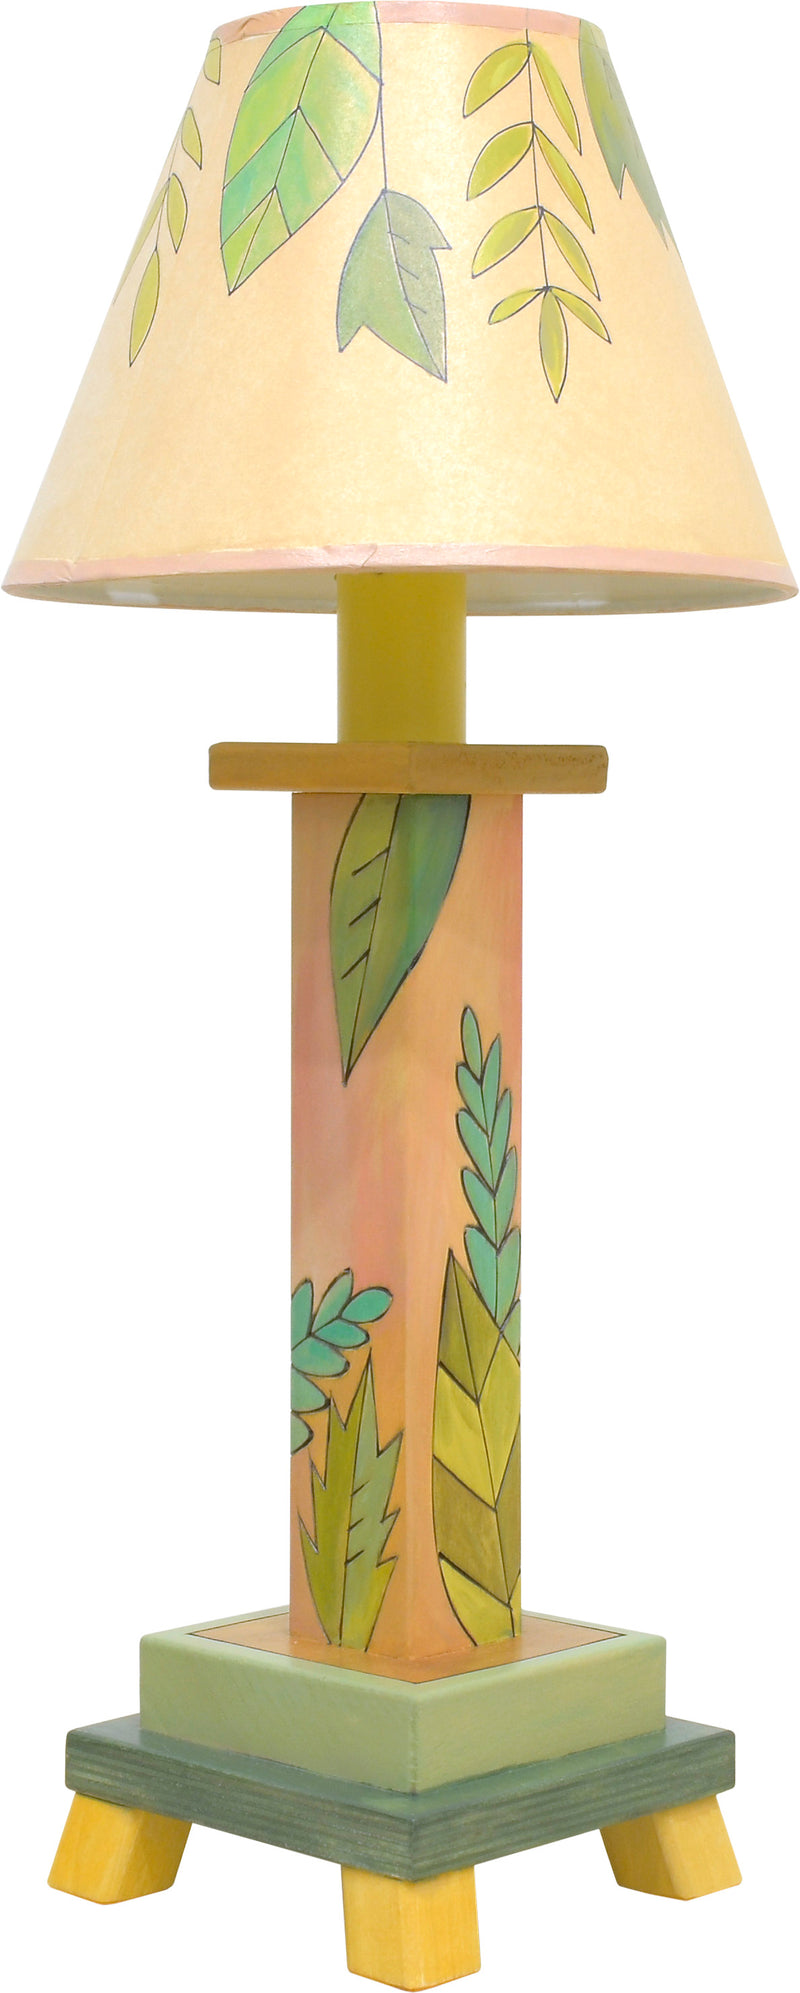 Milled Candlestick Lamp –  Sweet and simple foliage lamp motif